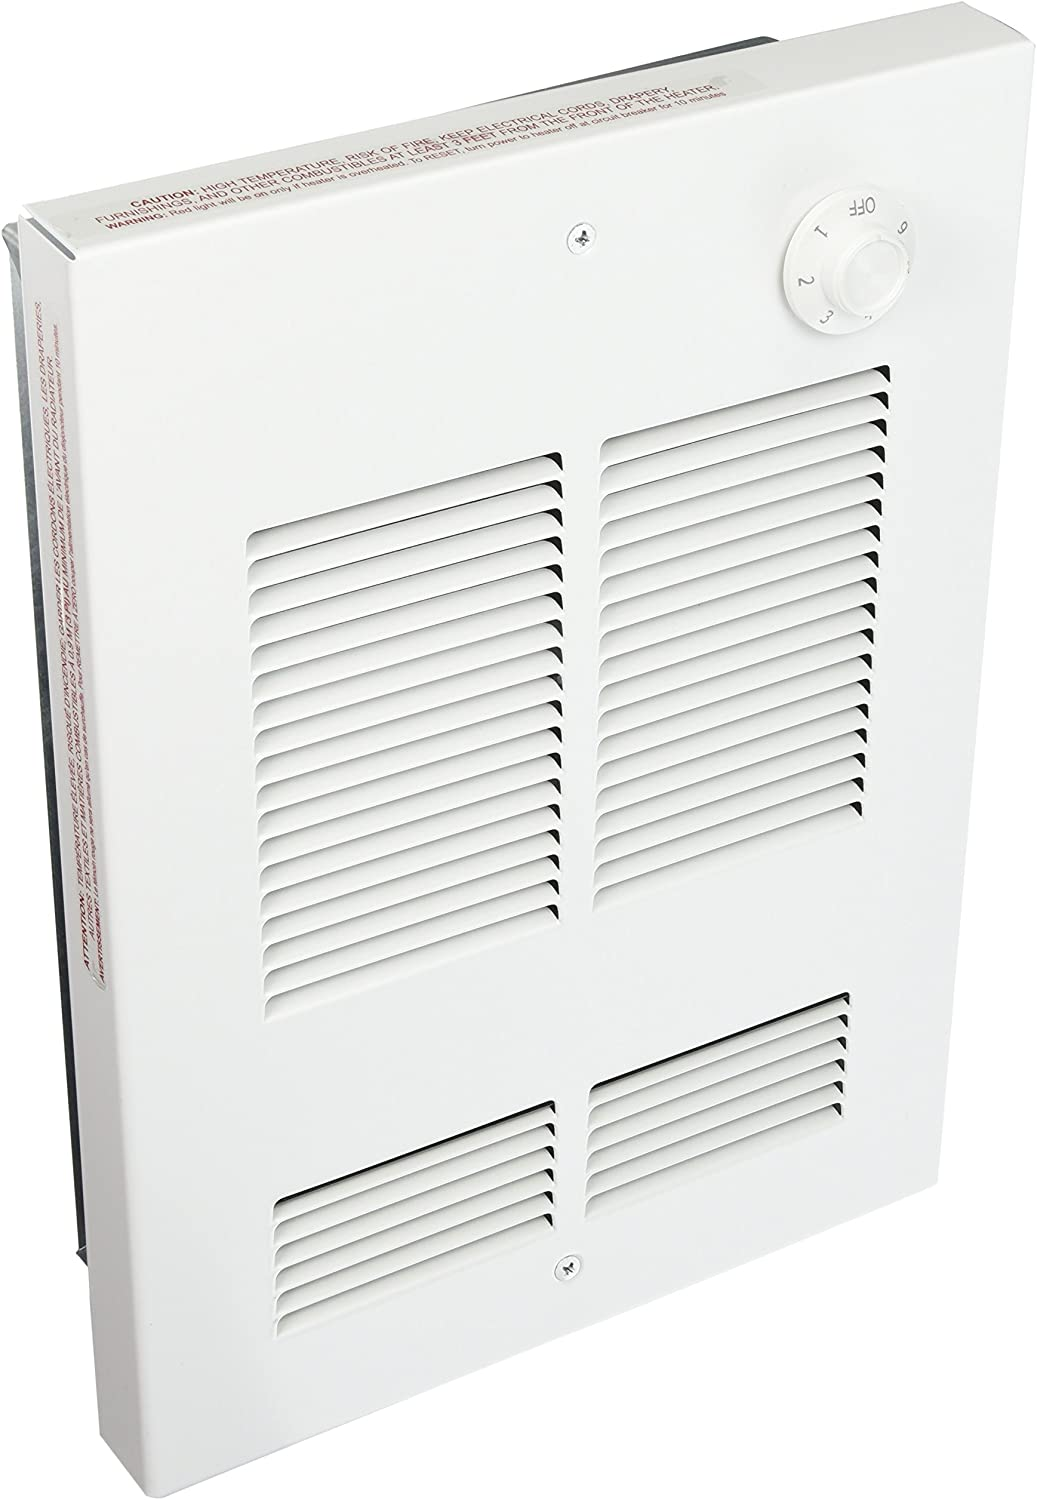 Marley SED1512 WALL HEATERS, White